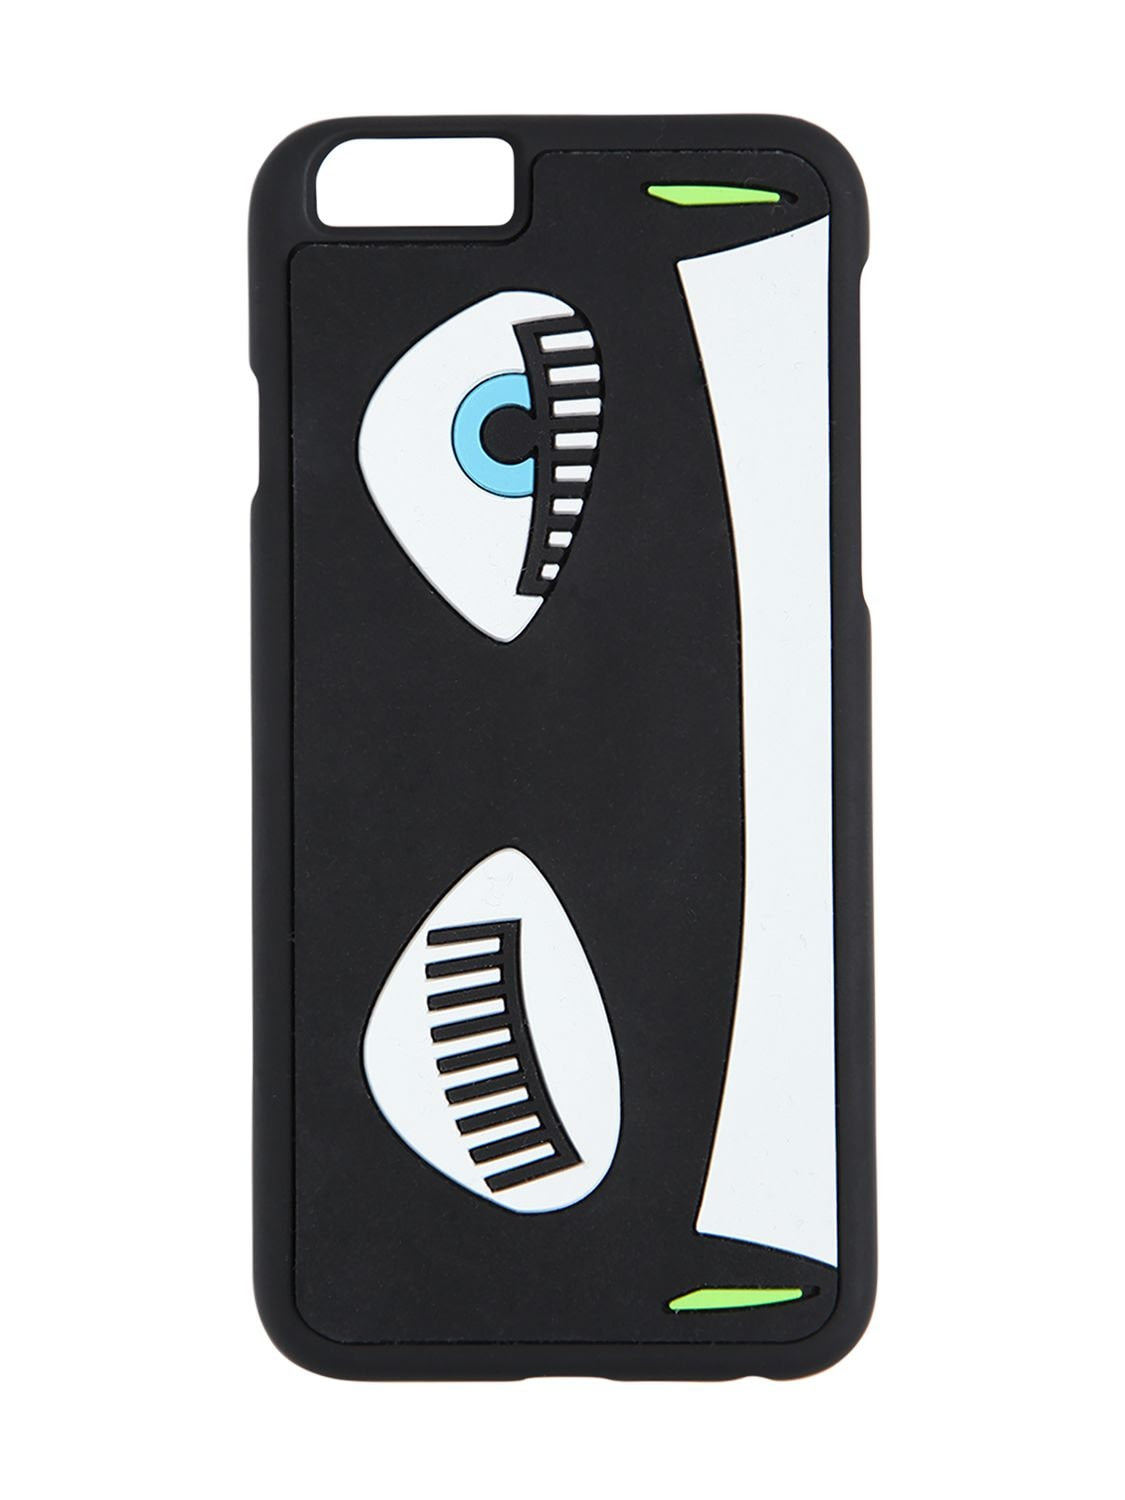 BUY FLIRTING IPHONE CASE NOW